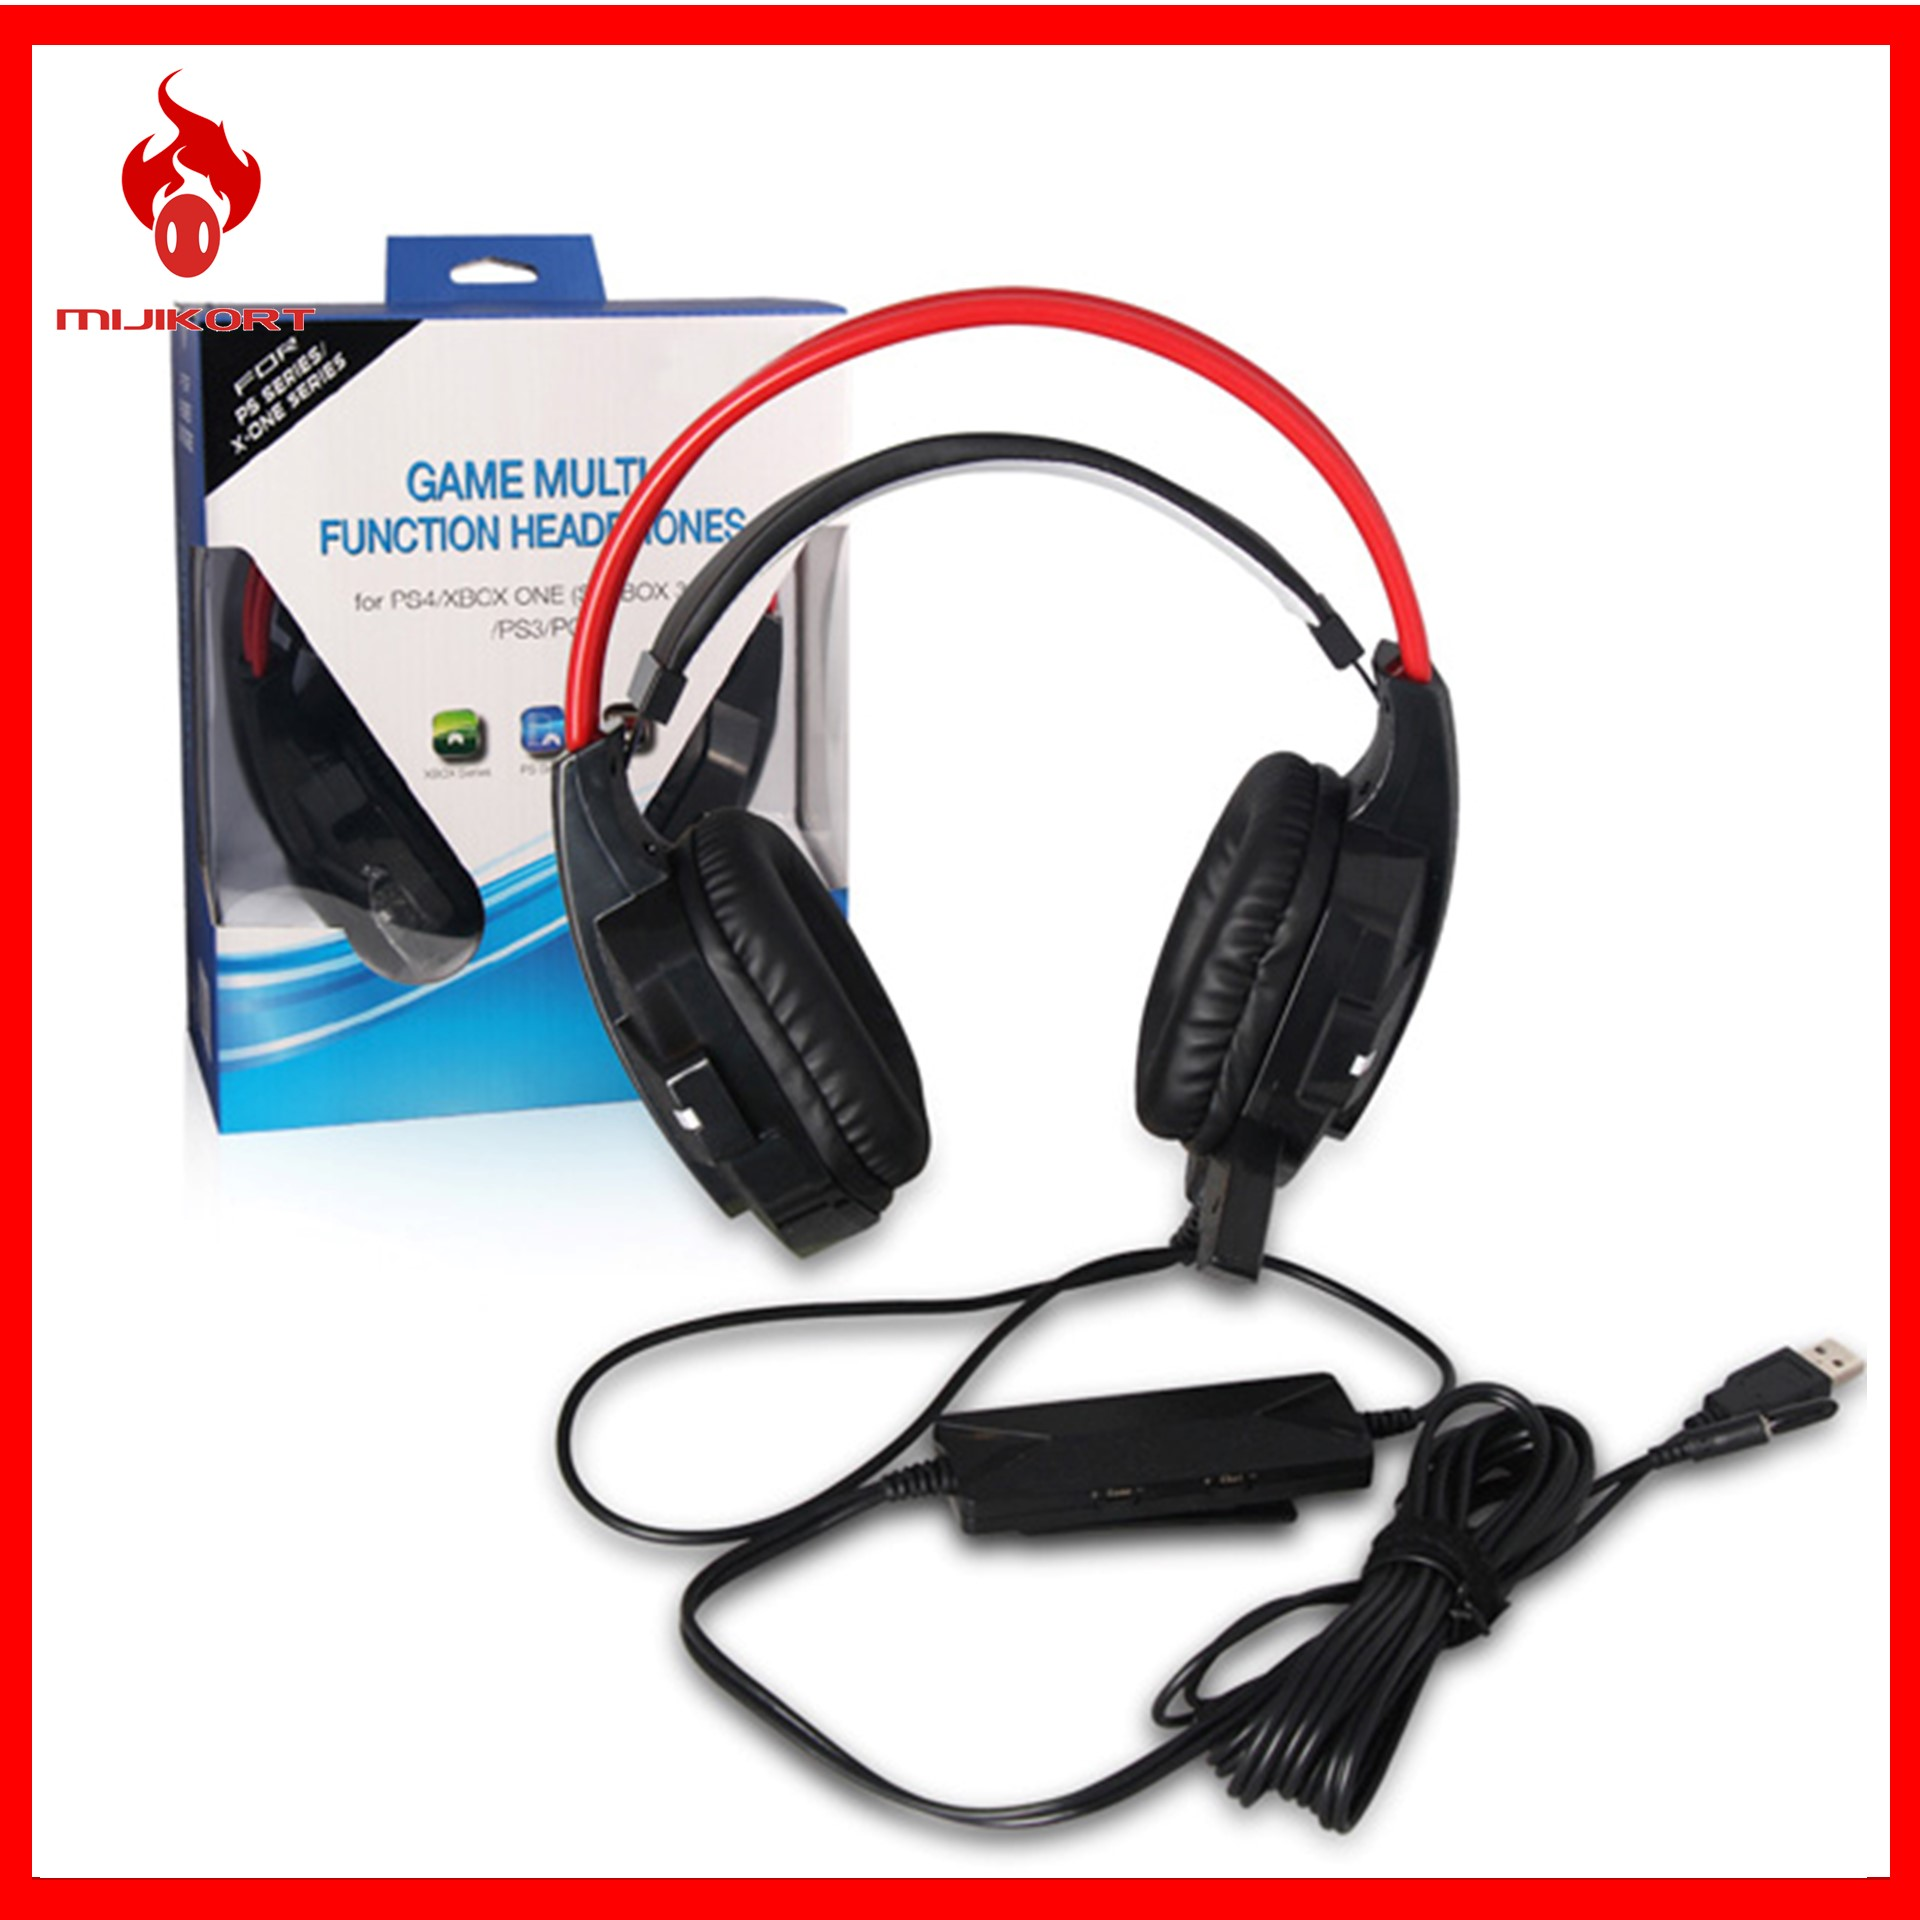 DOBE Wired Gaming Headset For PS3/PS4/PC/Xbox One/Xbox 360. ‹ ›